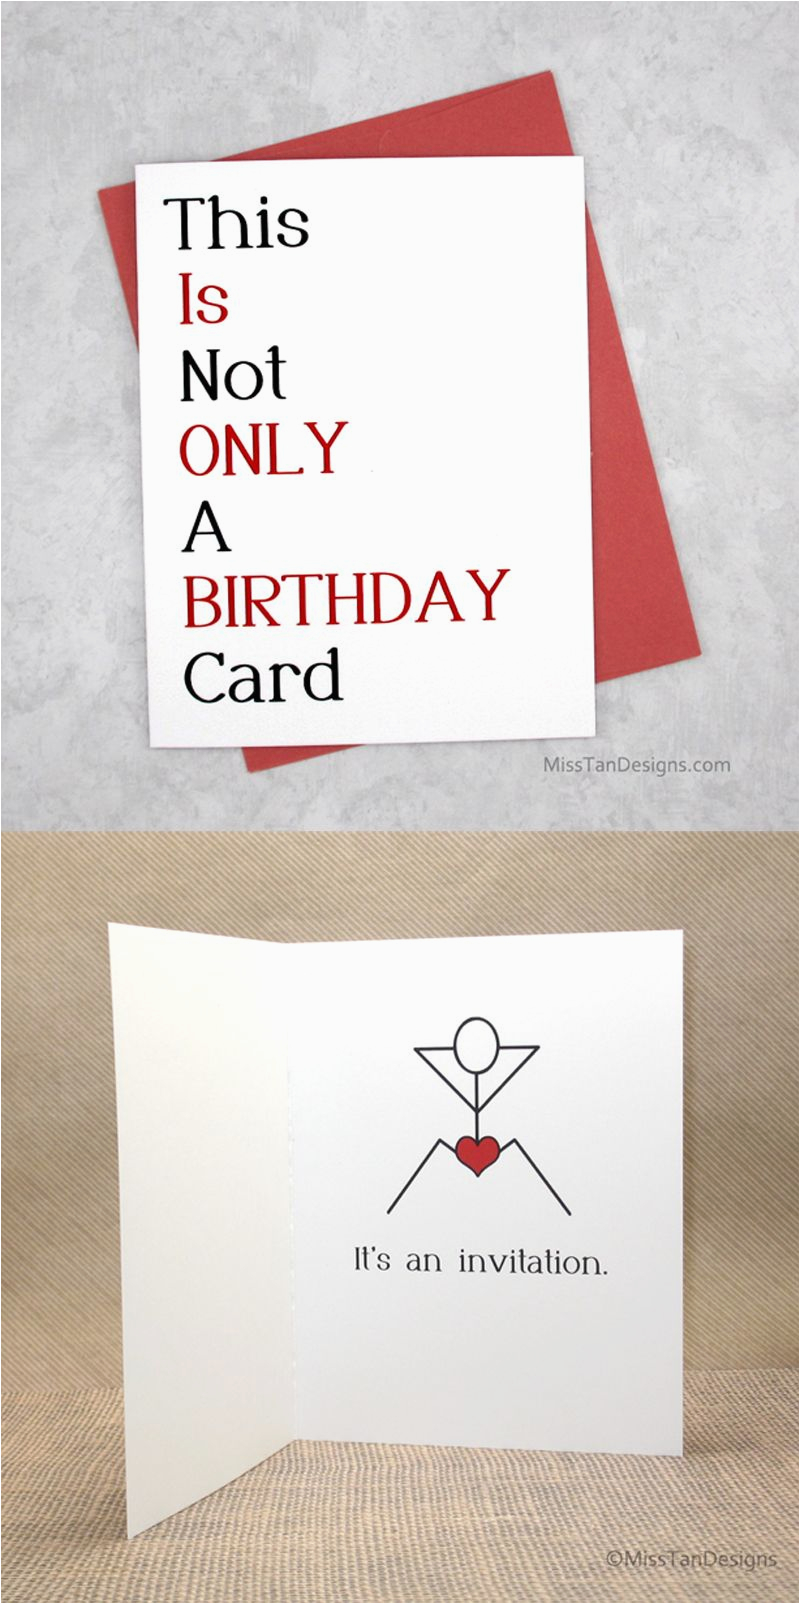 Boyfriends Mom Birthday Card Boyfriend Cards Not Only Funny Gift By